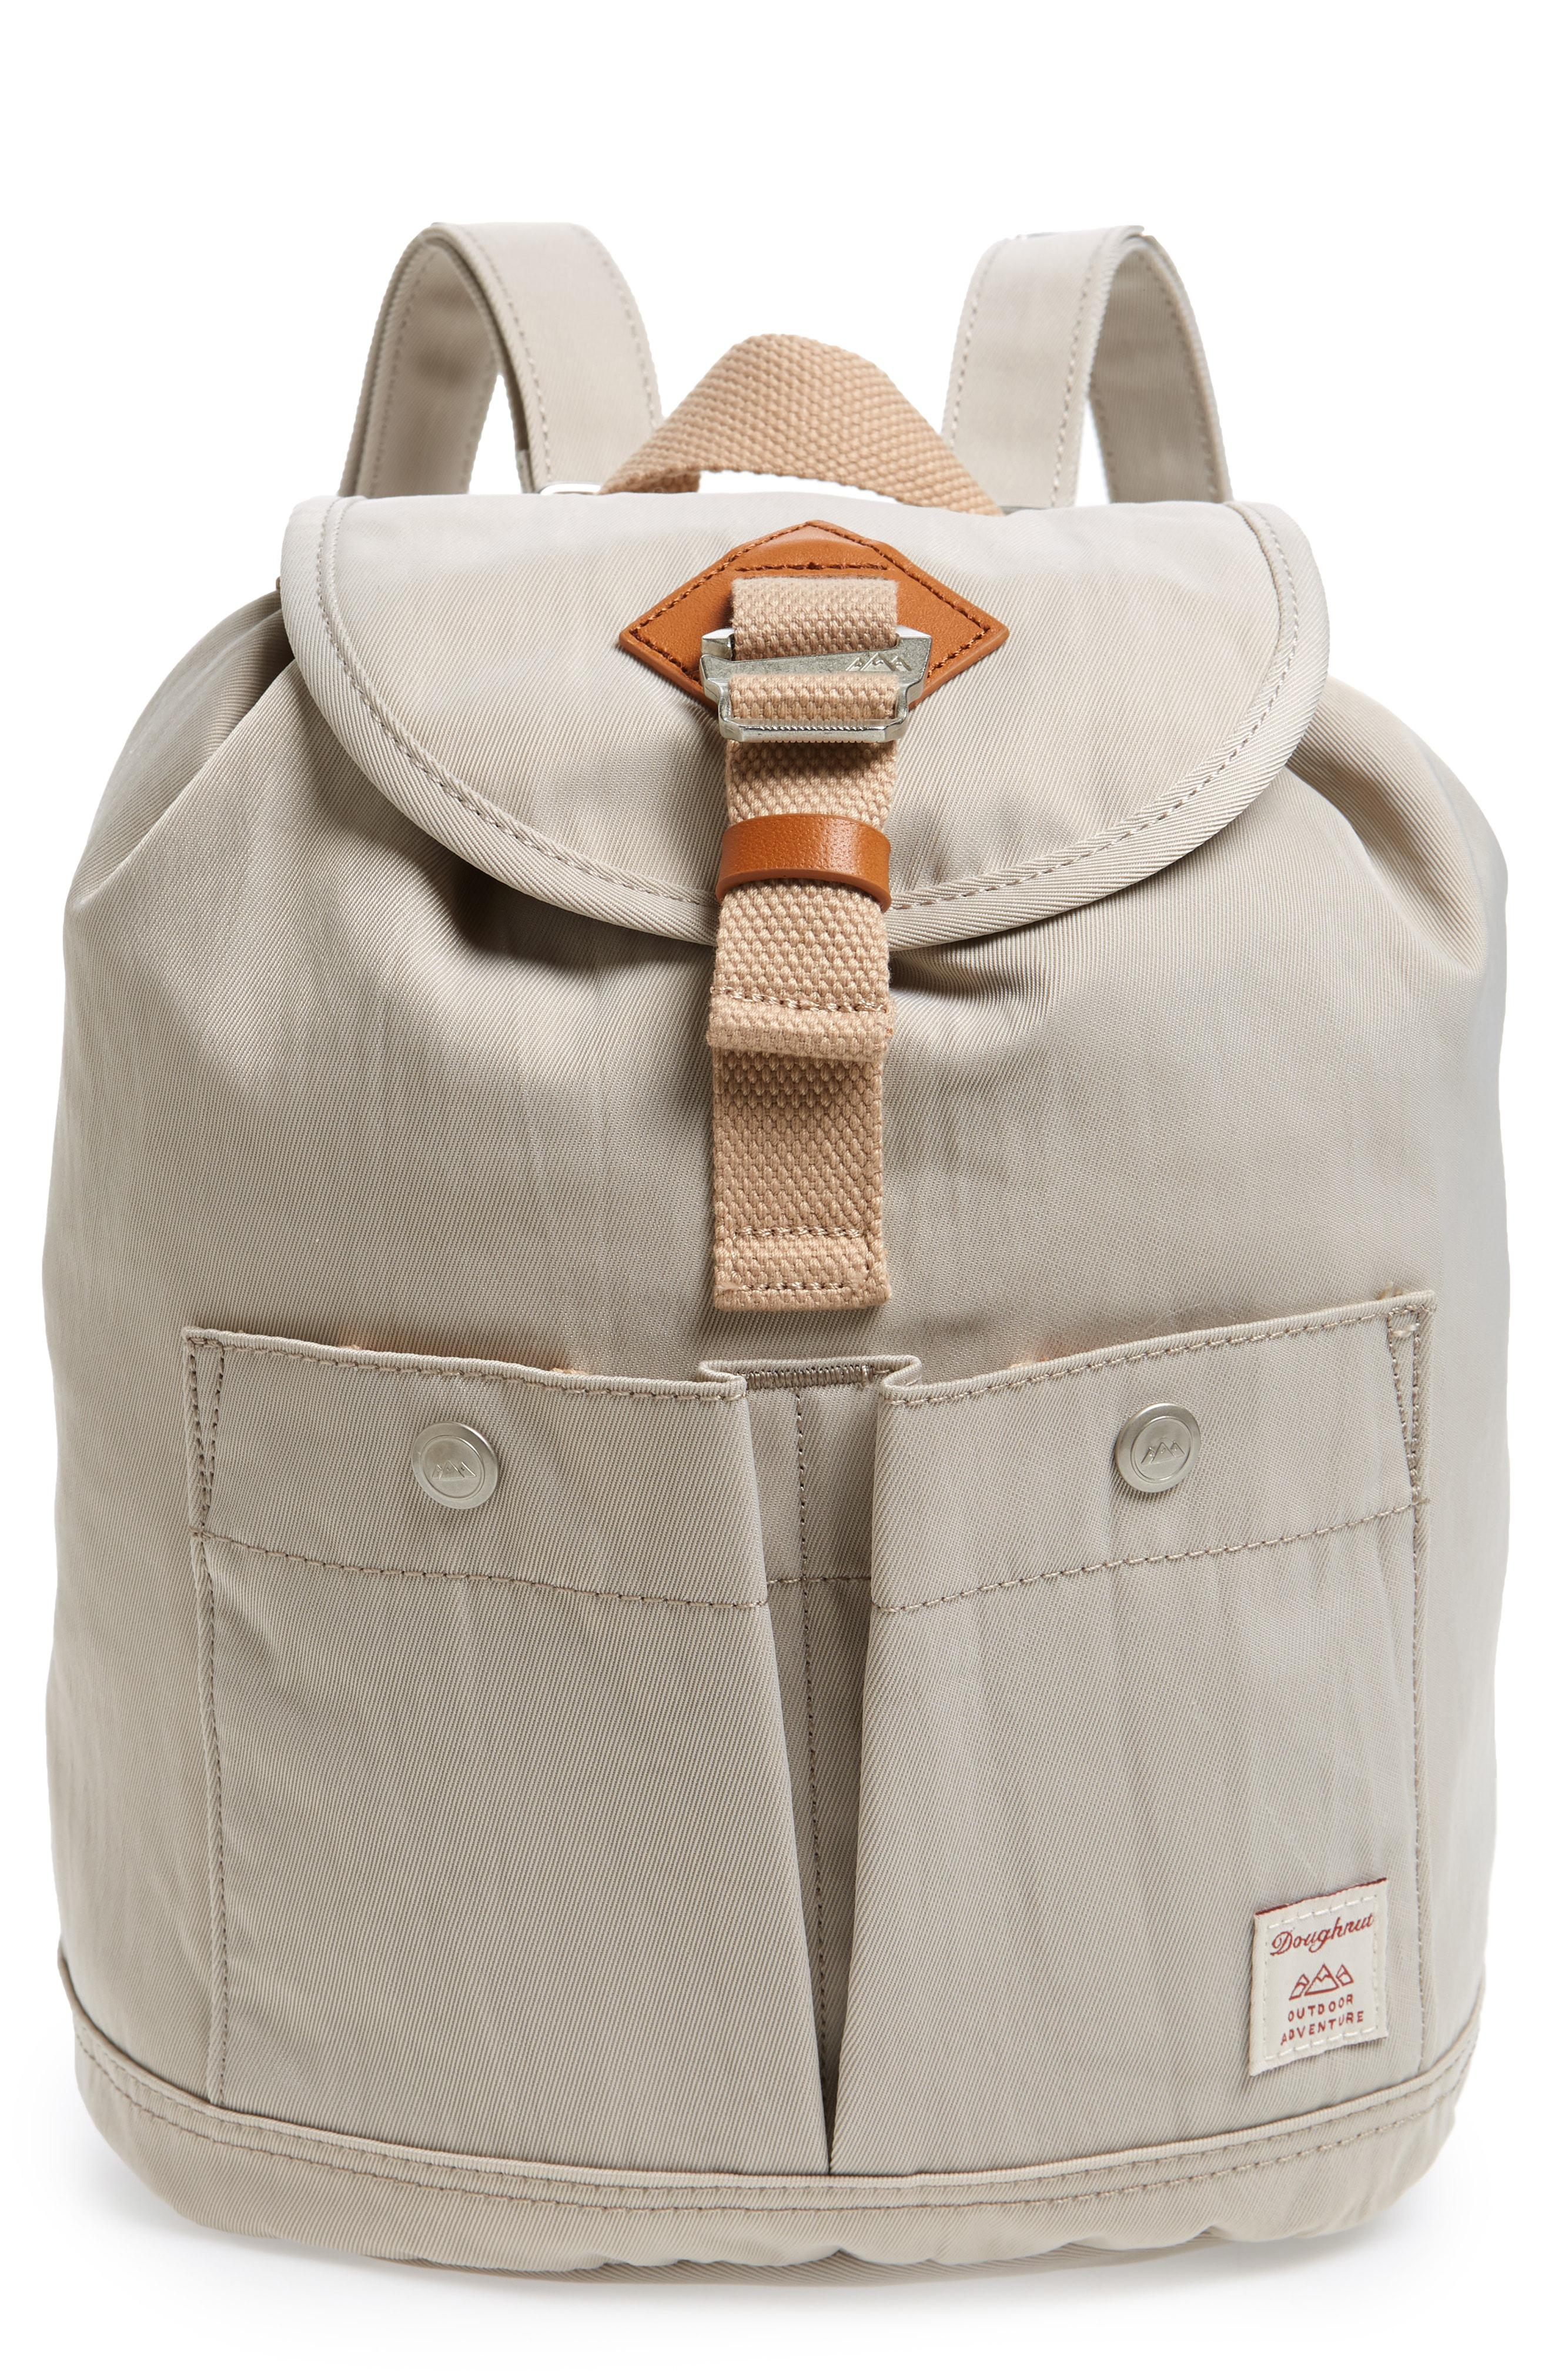 Lyst - Doughnut Mini Montana Water Repellent Backpack in White f22966d5cf549